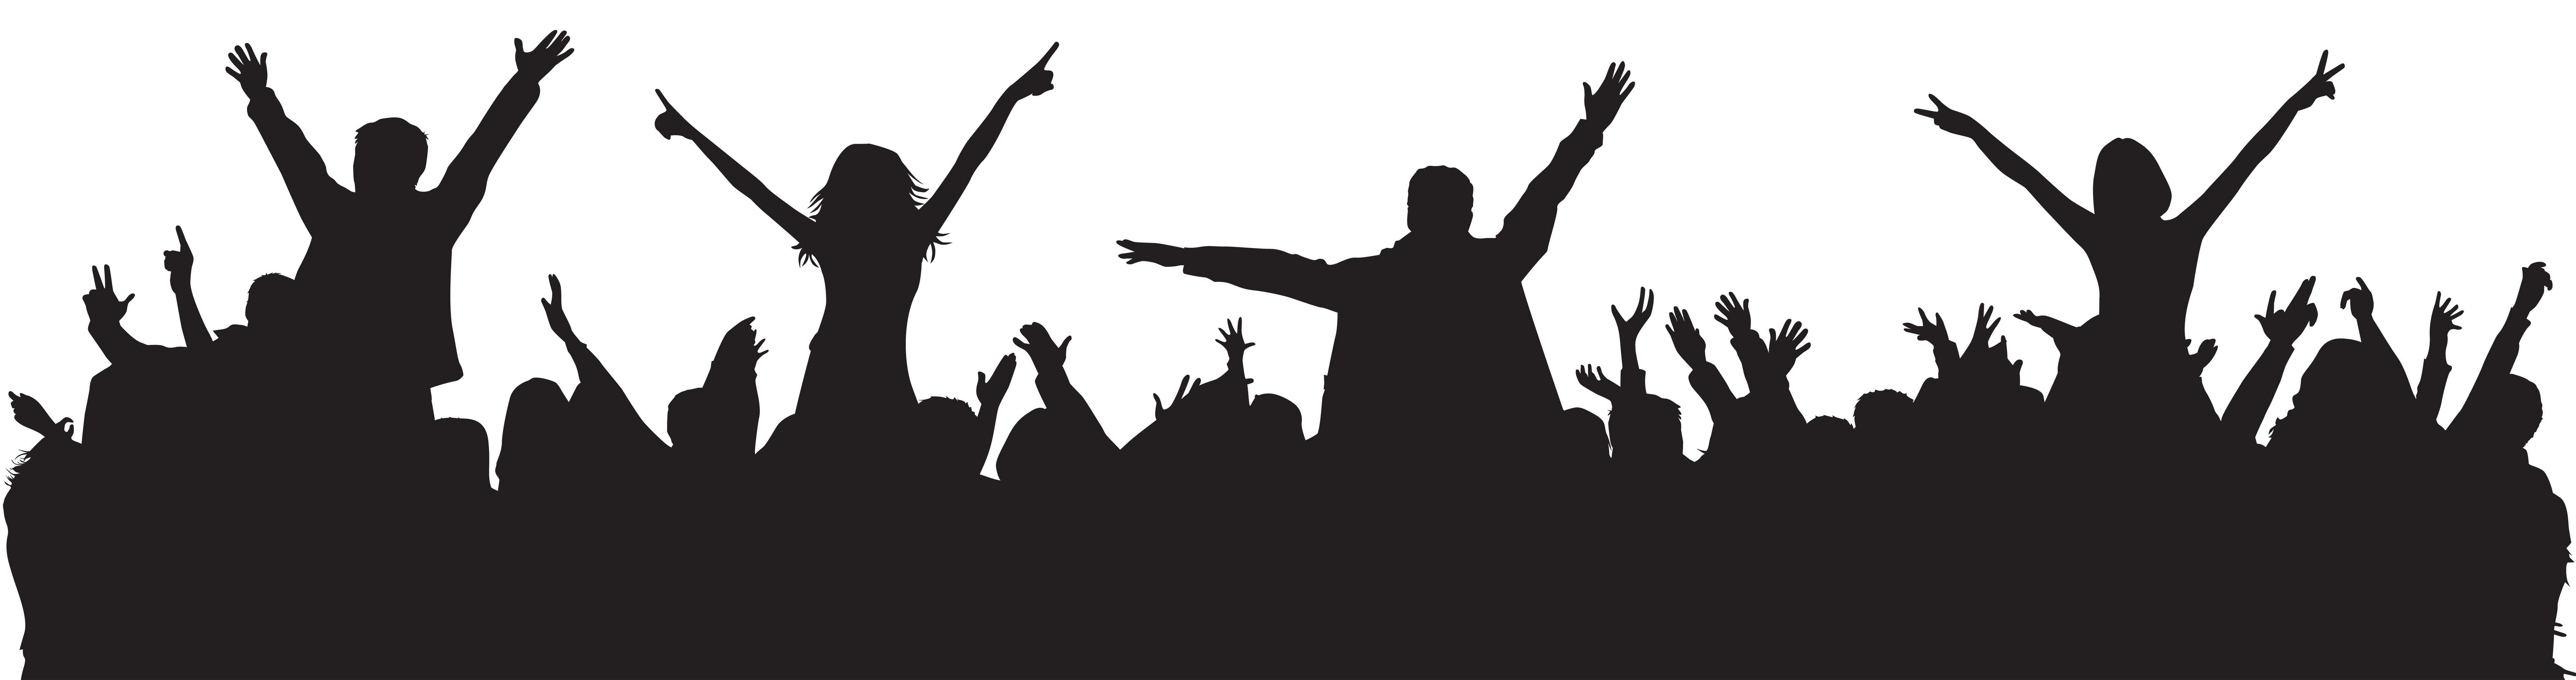 D20 clipart black and white. Party people silhouette png